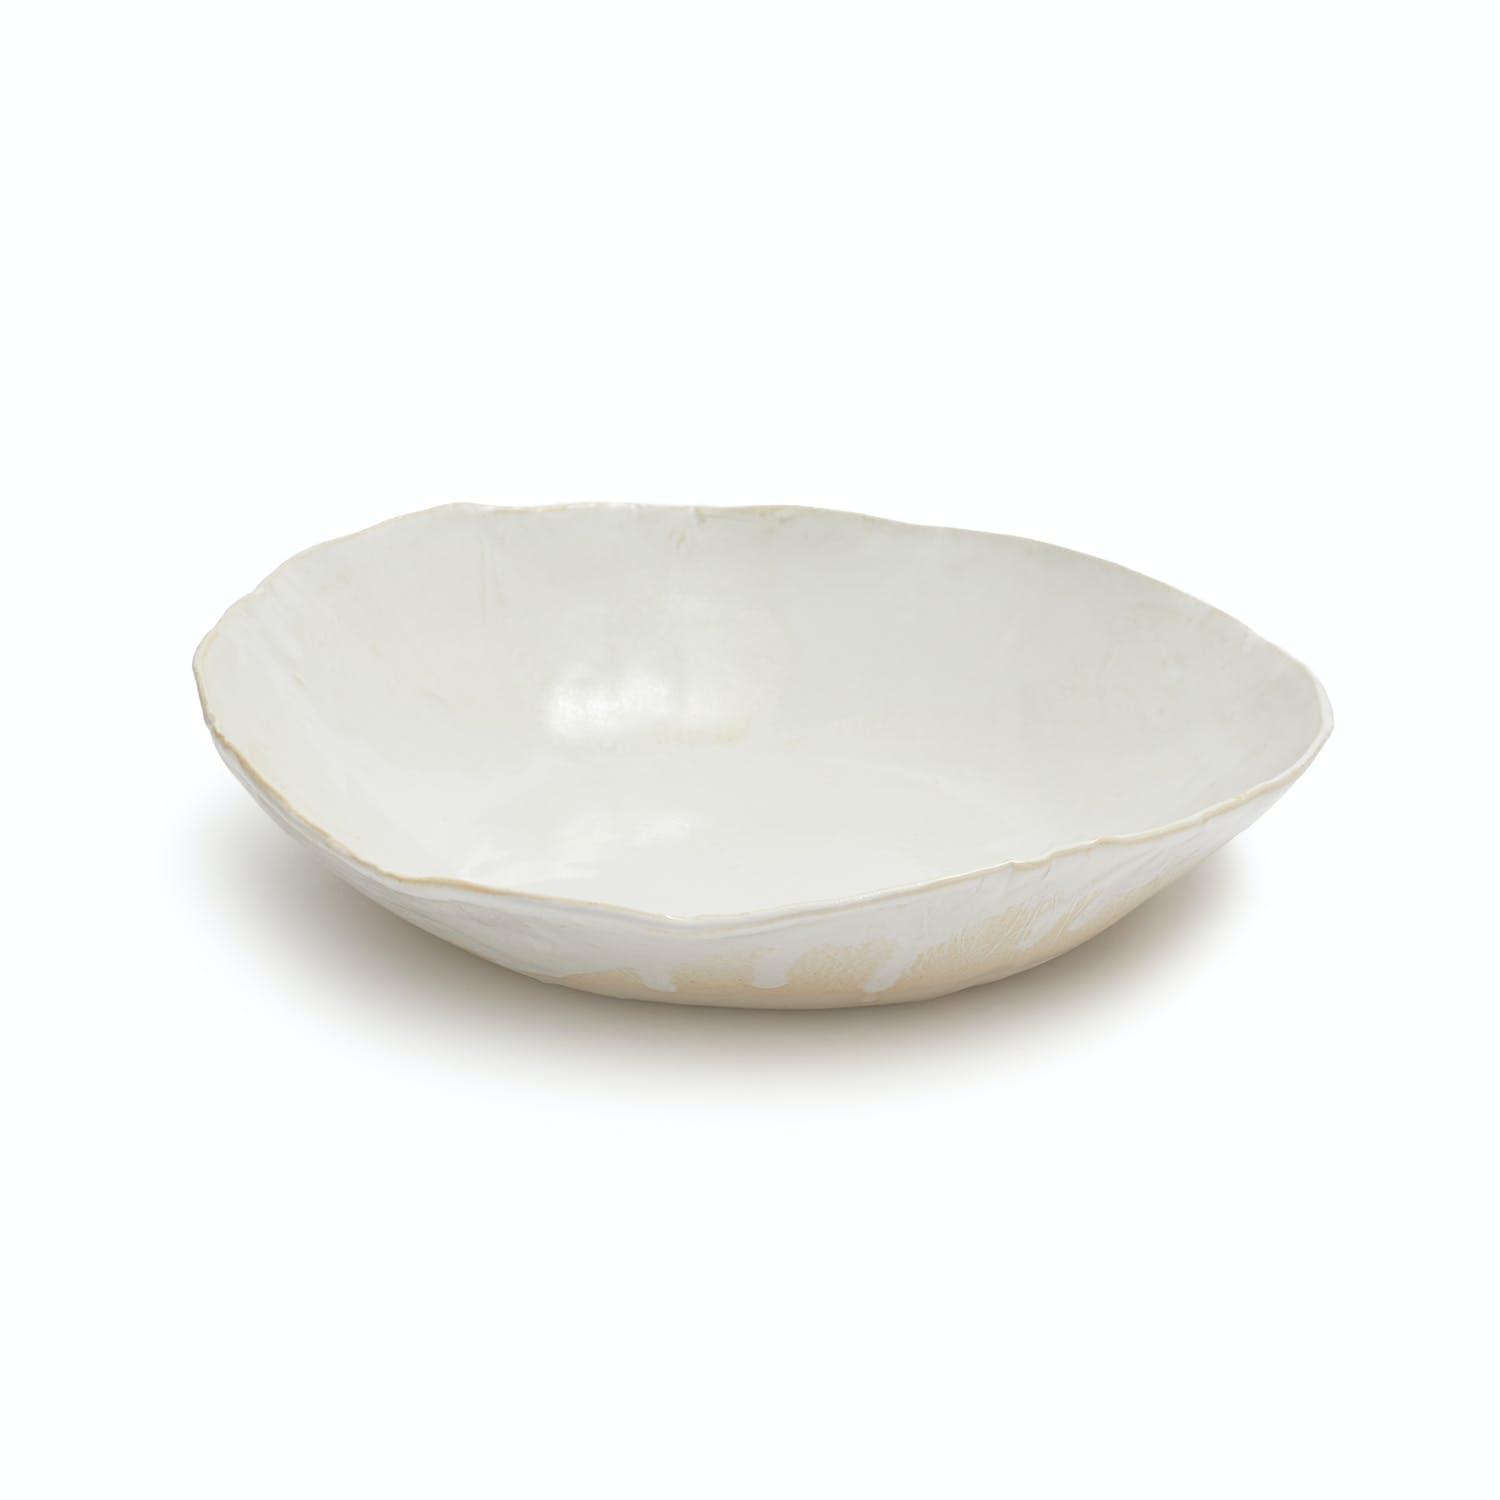 Jan Burtz Porcelain Pasta Bowl White